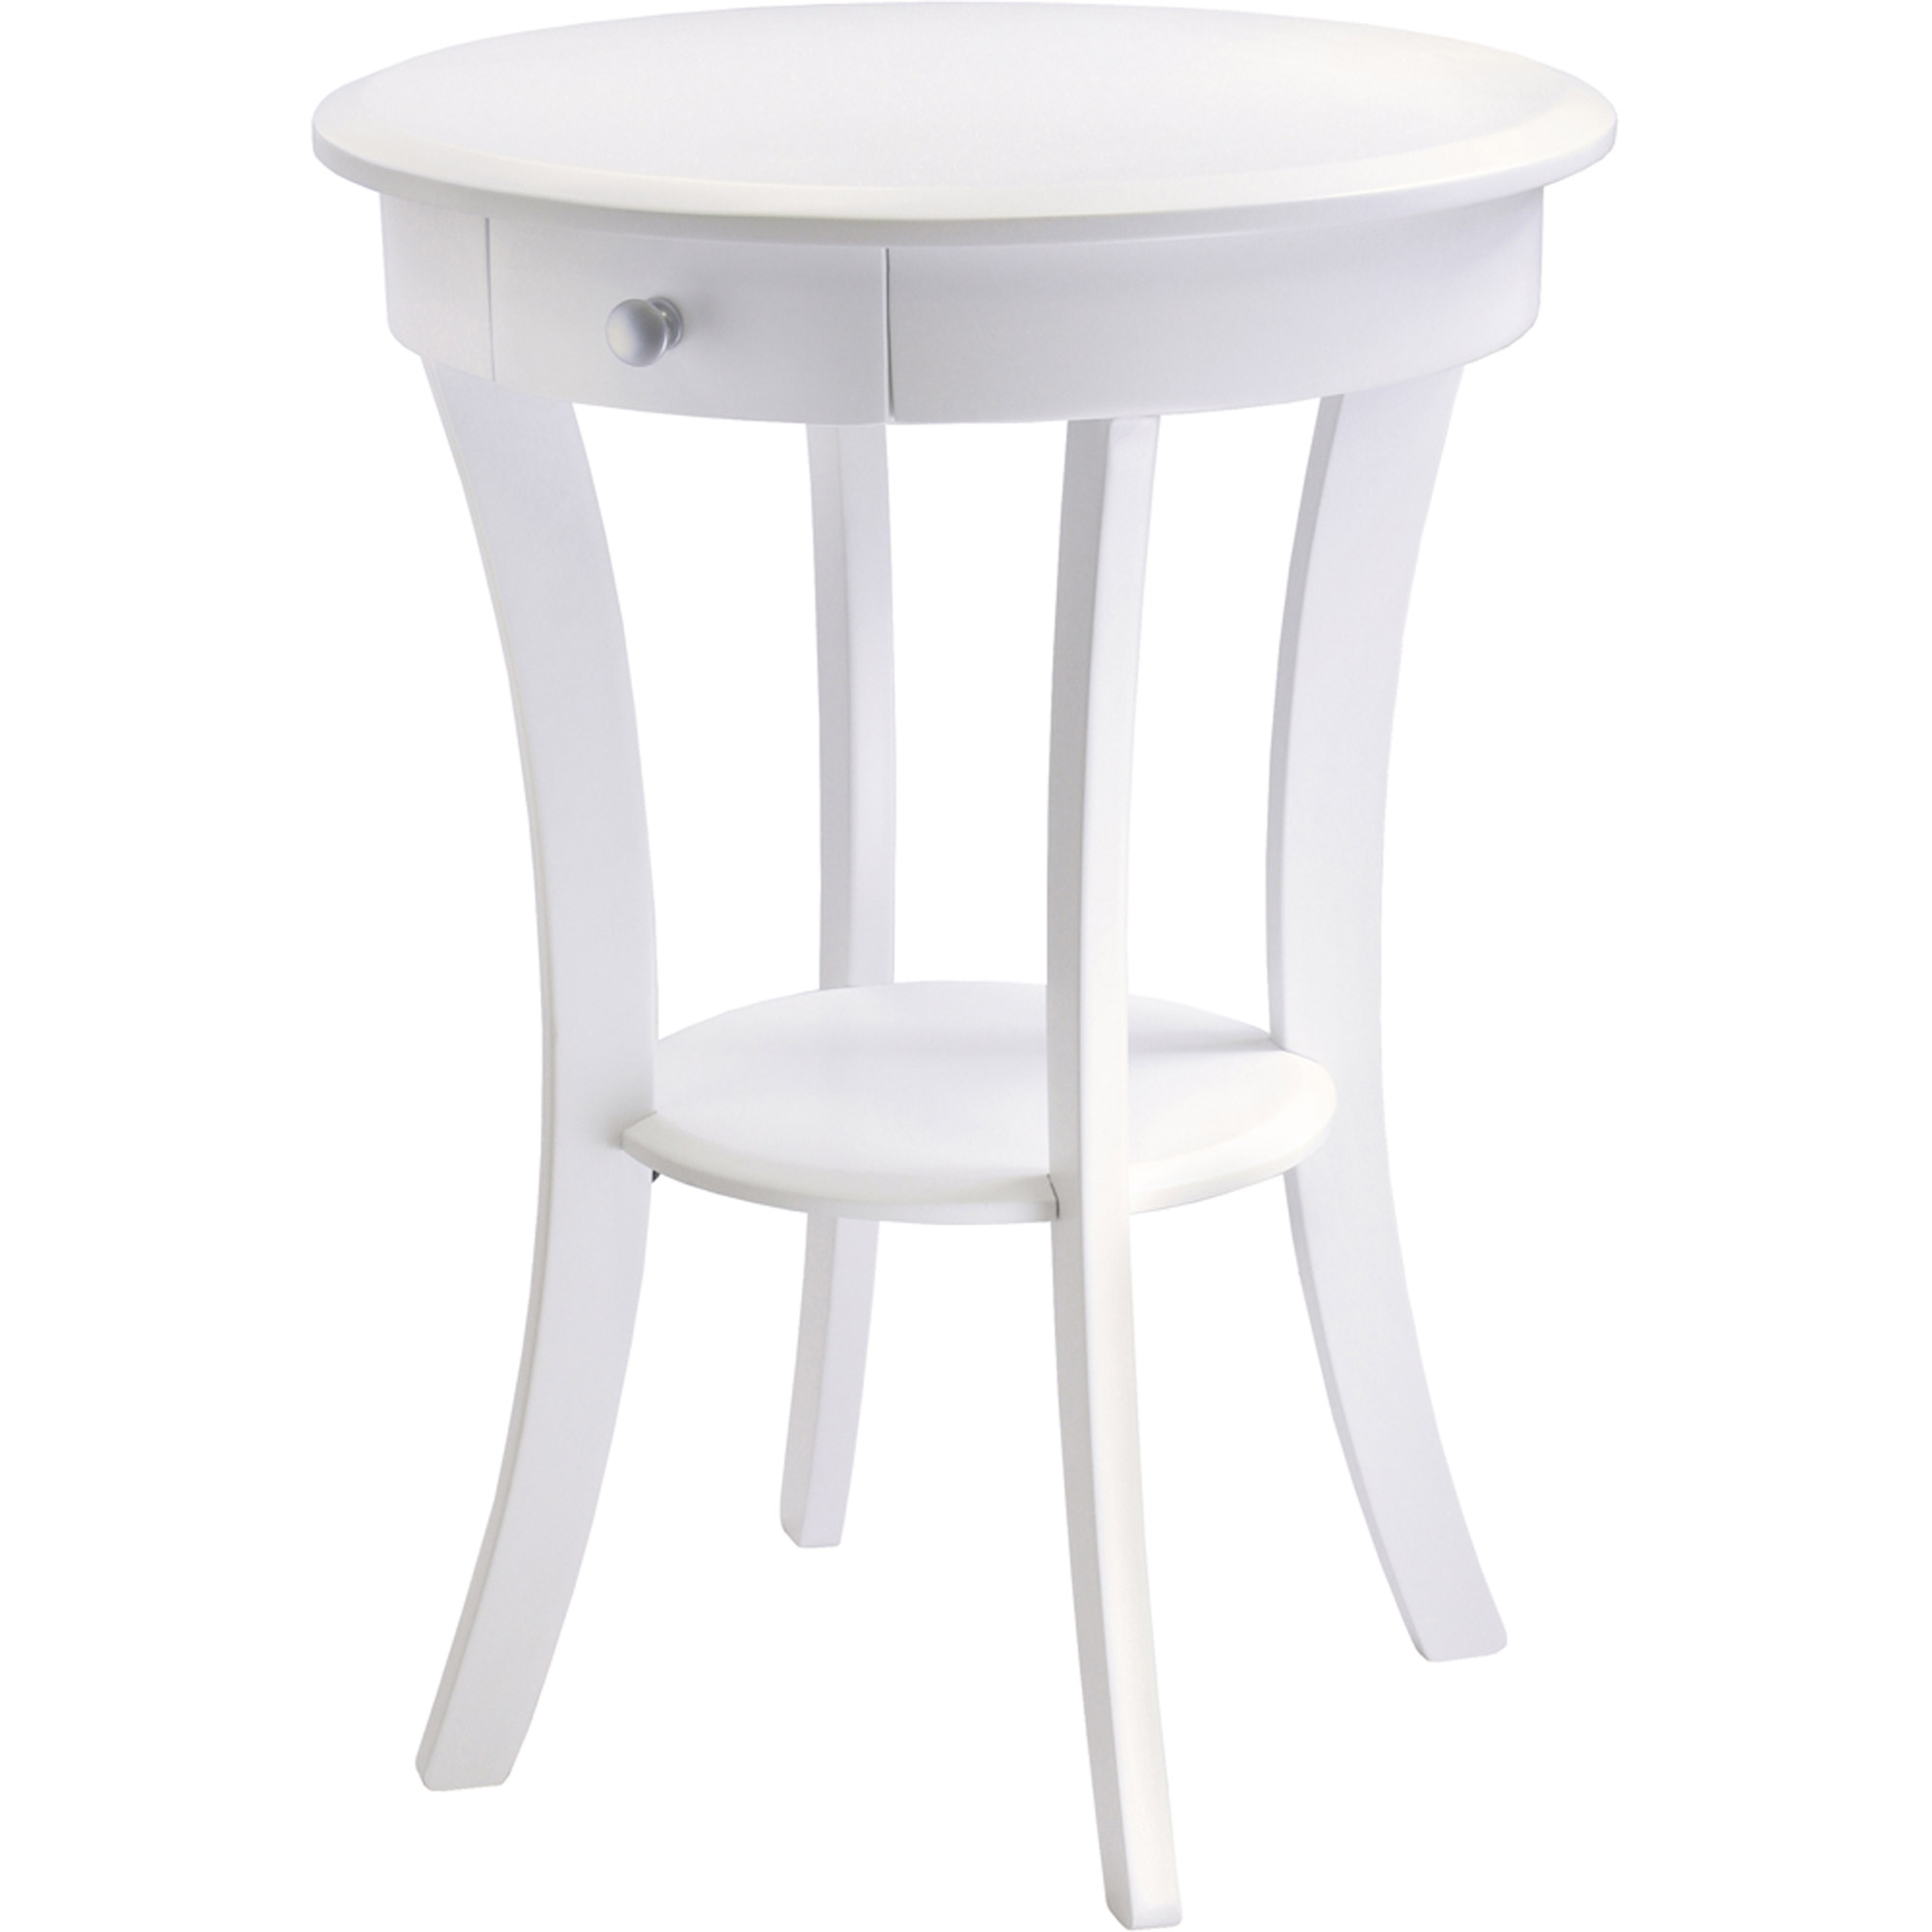 sasha round accent table small metal pier imports patio furniture grey bedroom chair full marble coffee reasonable outdoor umbrella trestle height boutique floor lamps cherry